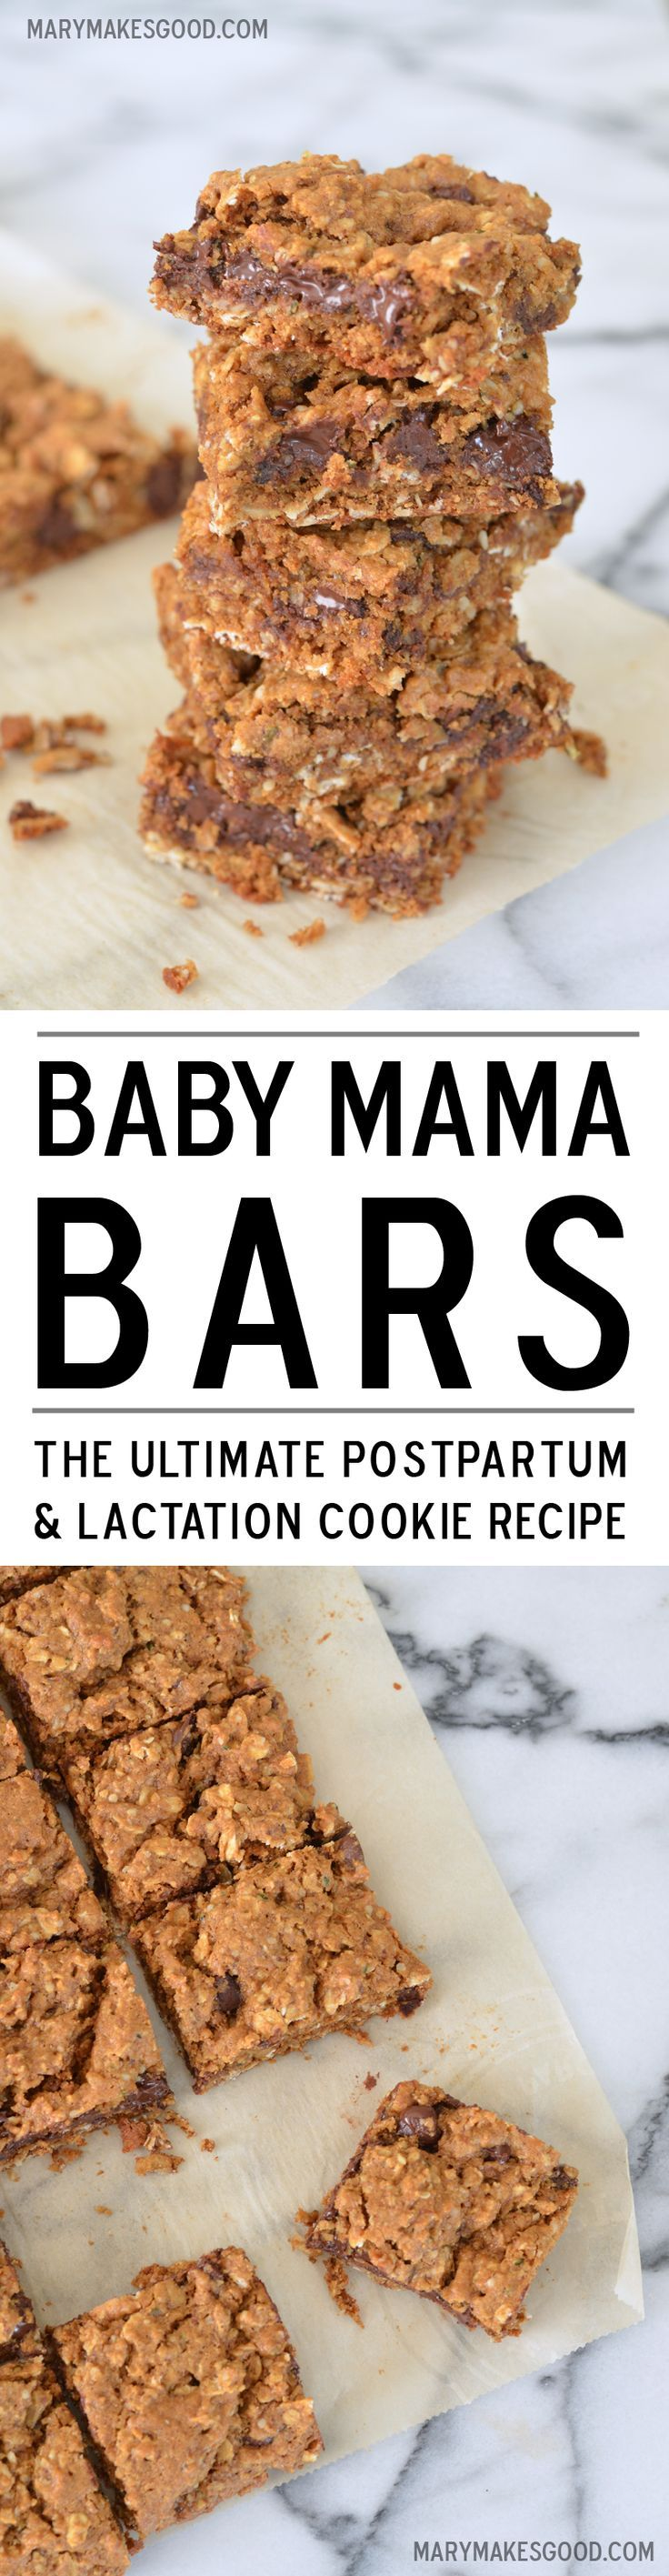 Baby Mama Bars, for Postpartum & Lactation. Yum!